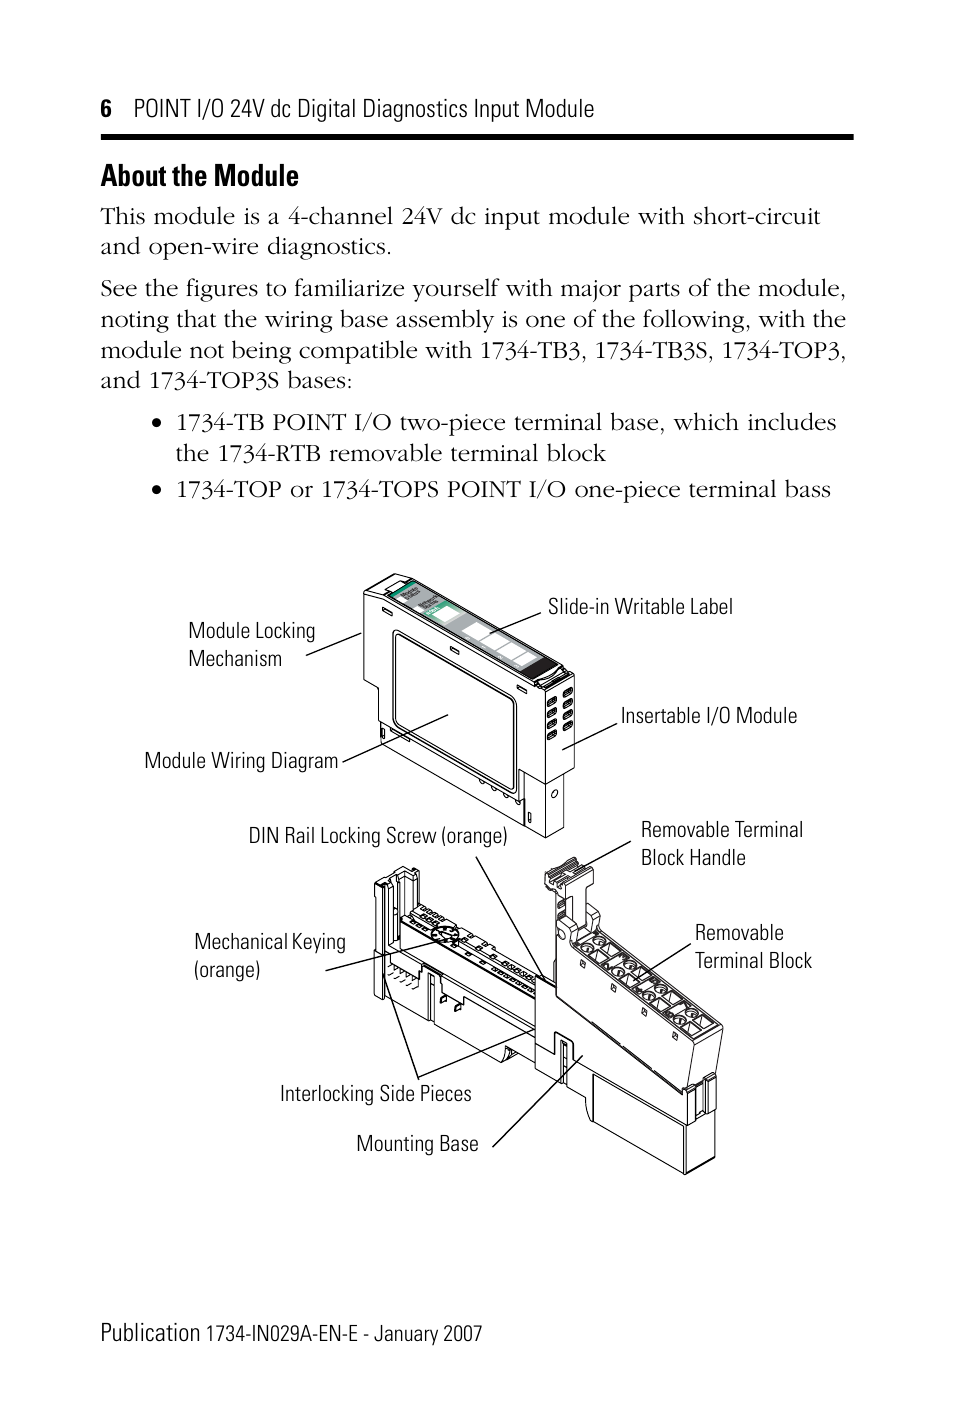 about the module rockwell automation 1734 ib4d point i o 24v dc 4 1756-ob16e wiring diagram about the module rockwell automation 1734 ib4d point i o 24v dc 4 channel discrete input module installation instructions user manual page 6 28